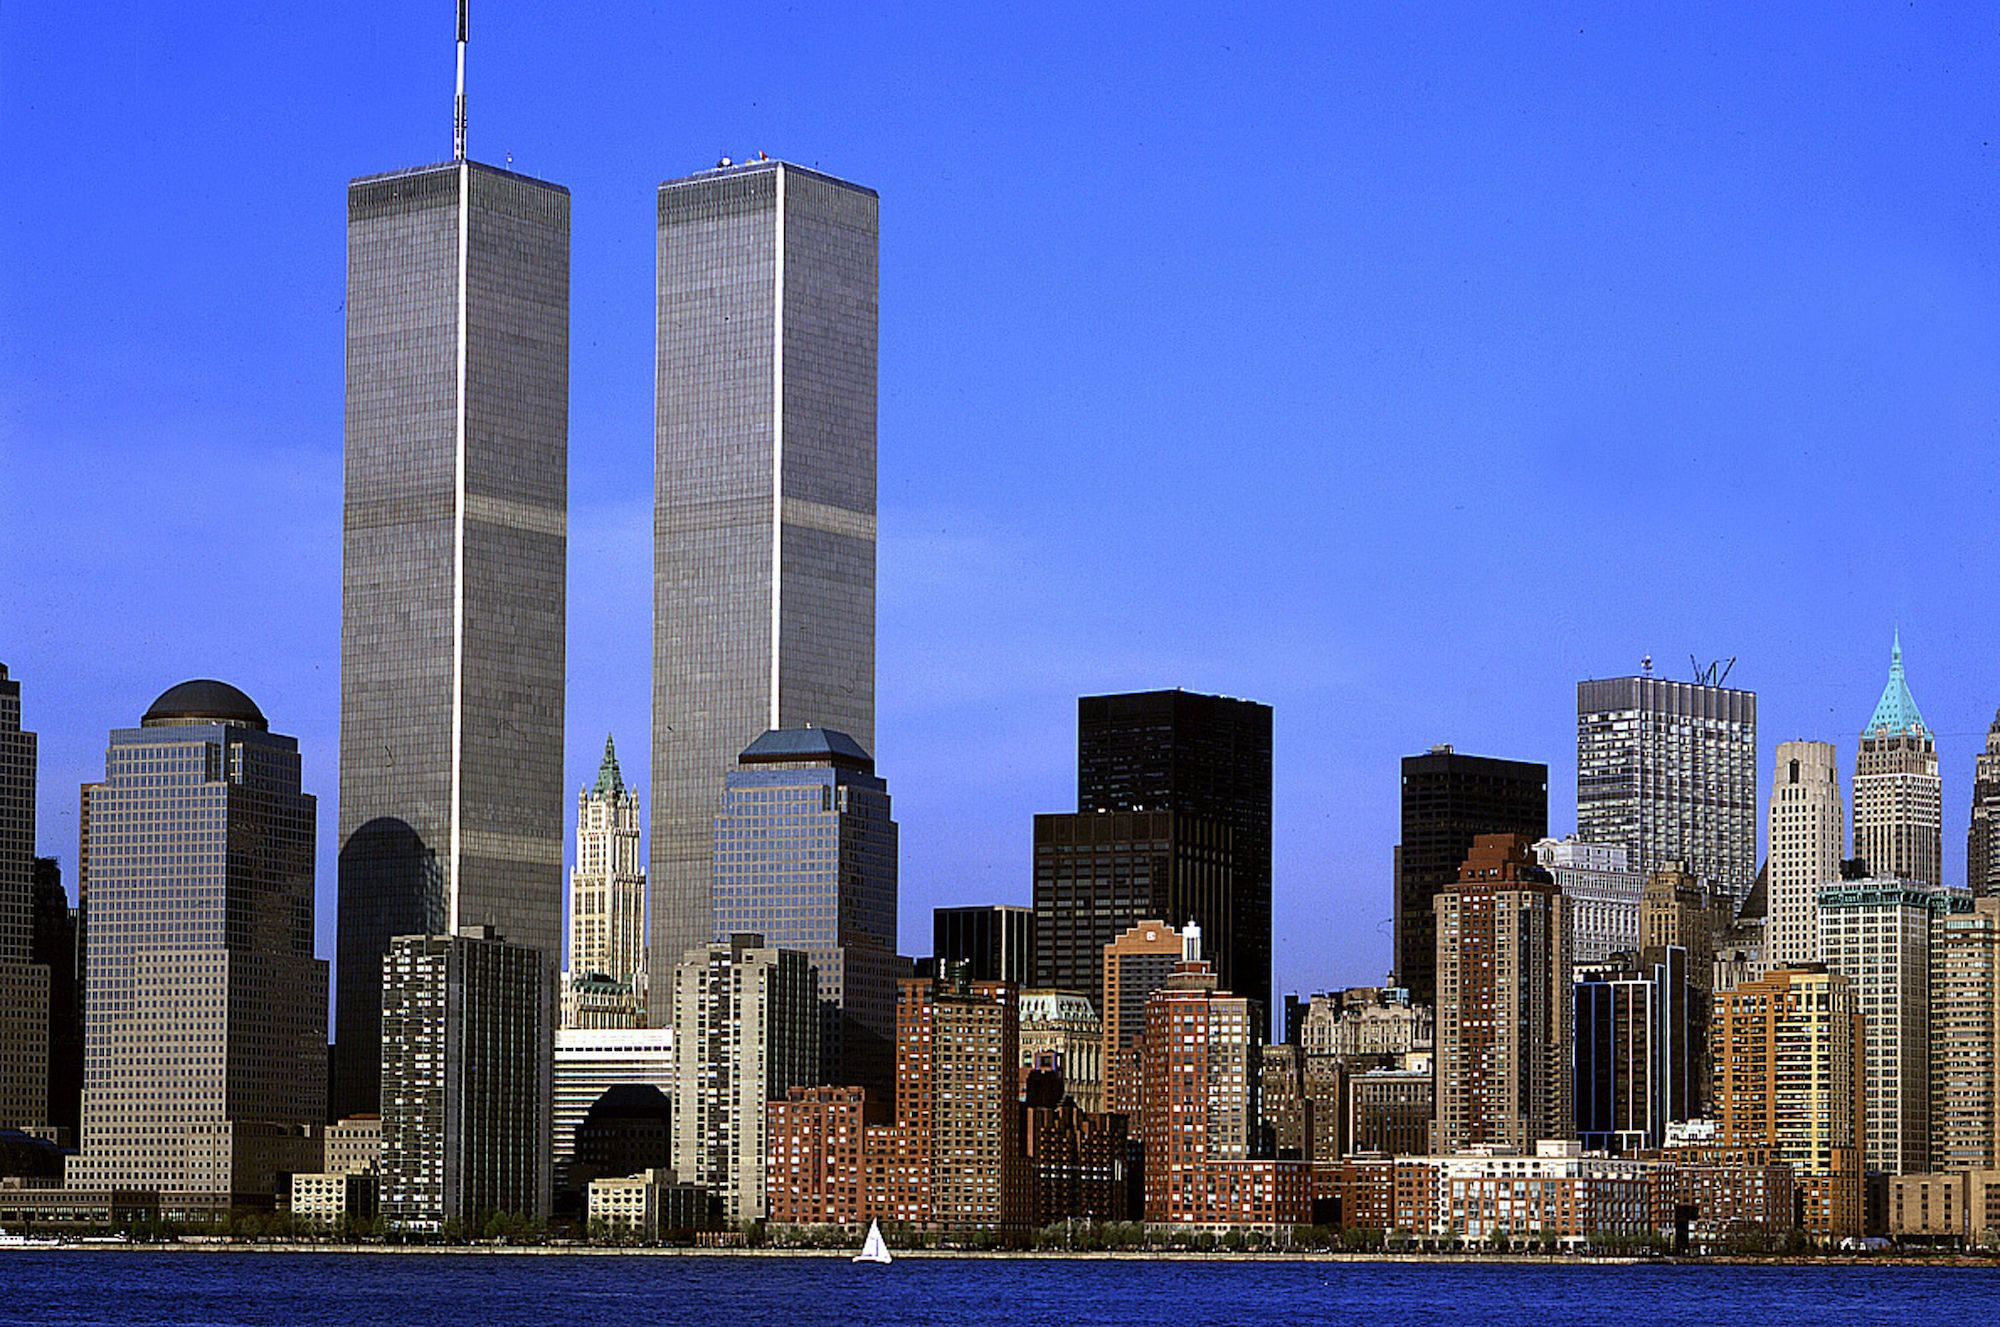 The Twin Towers suffered progressive collapse